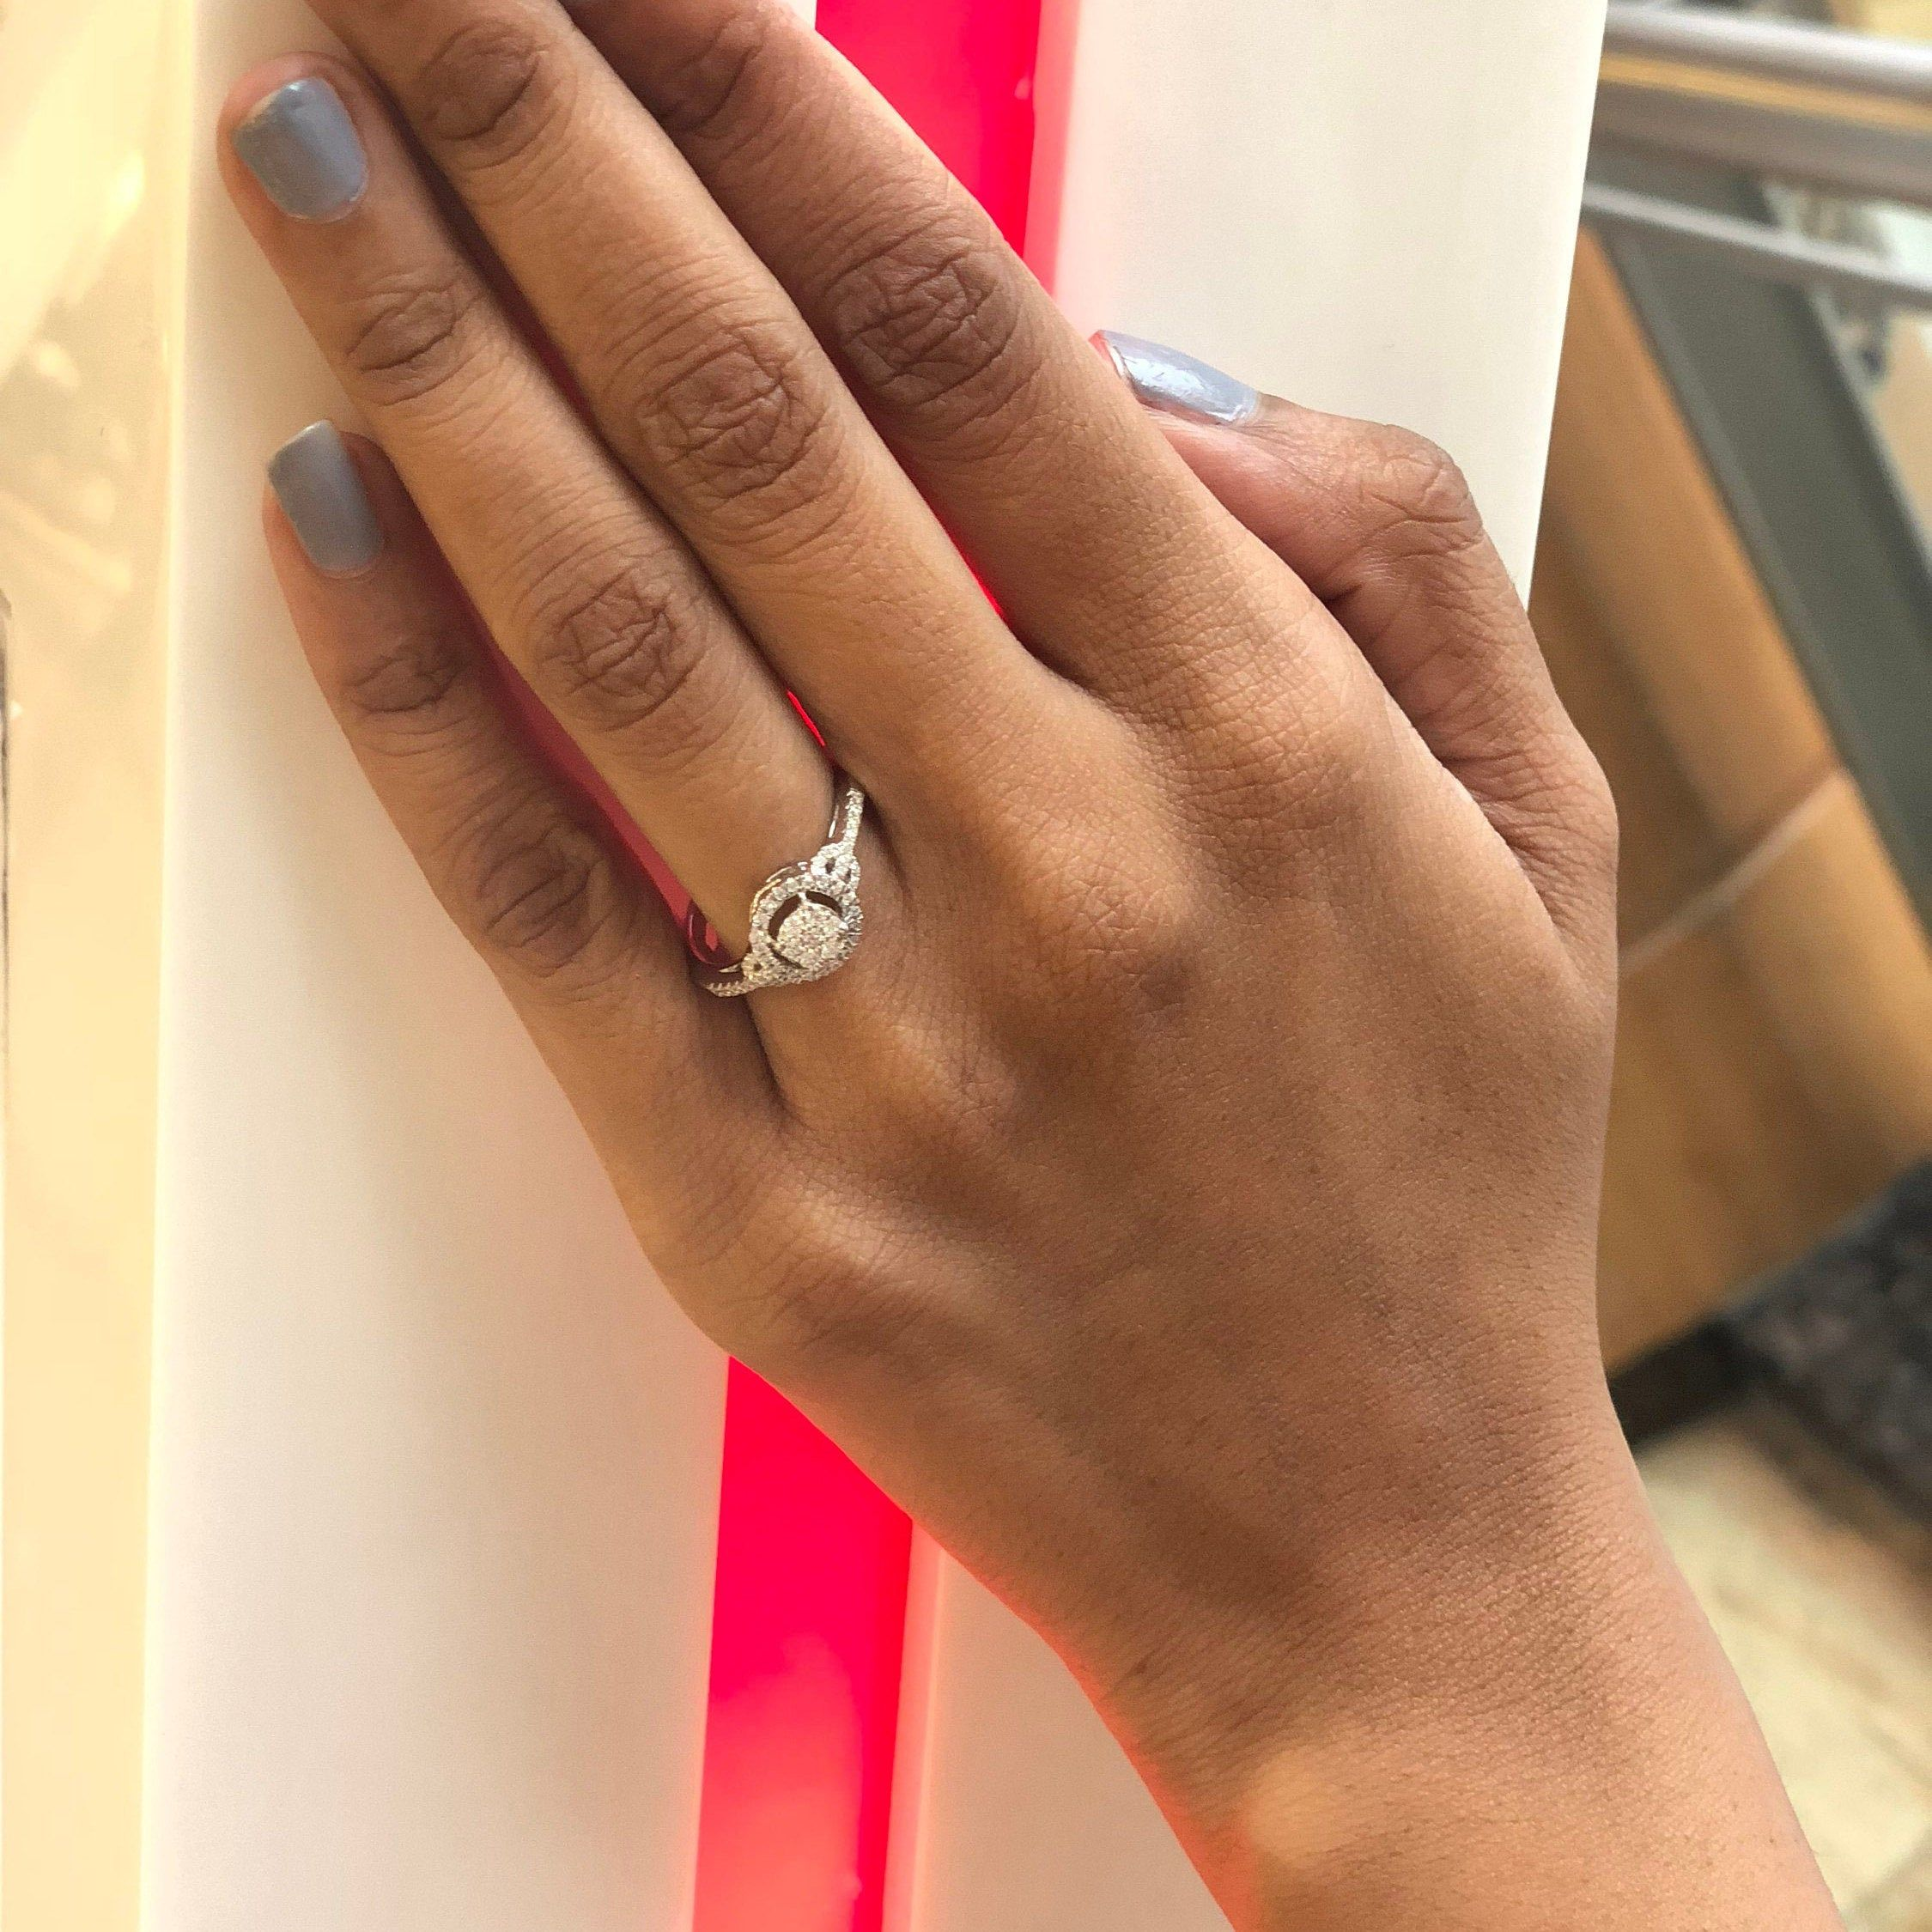 100 Pure Diamond Ring 1 4 Ct Natural Diamond Ring For Women I1 Clarity 10k White Gold Cluster Diamond Jewelry Gifts For Women Gh Color Diamond Pure Products Diamond Jewelry